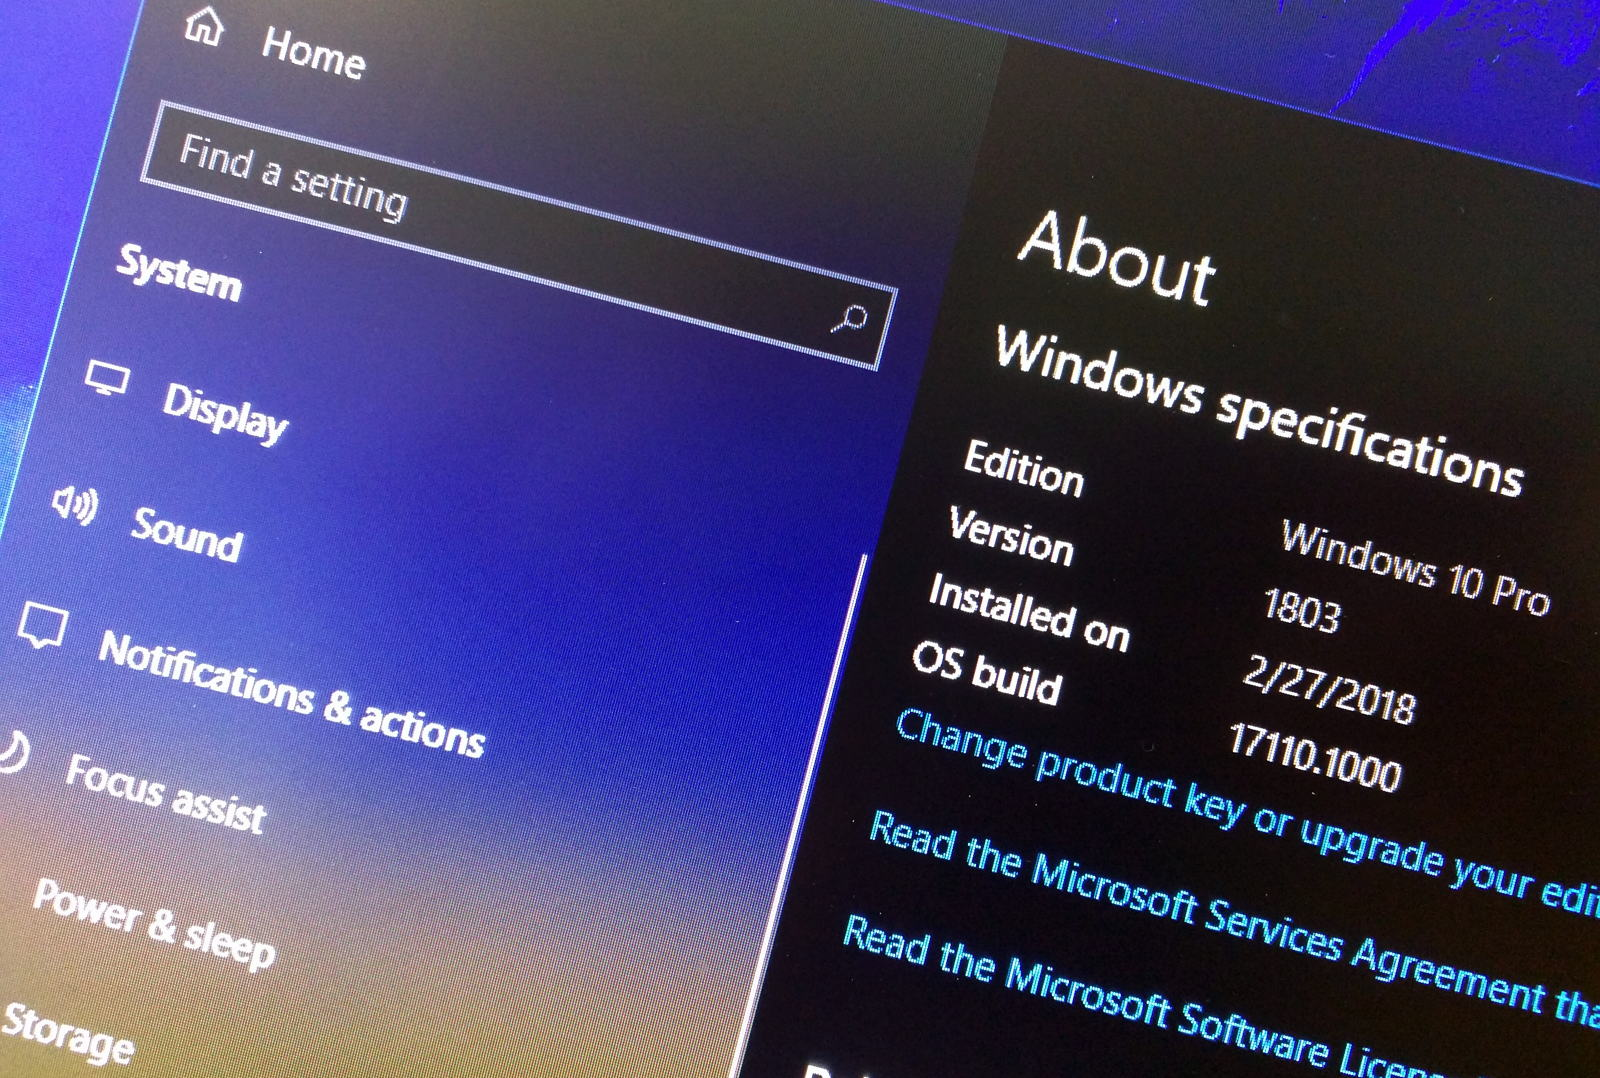 How to install Windows 10 from a USB stick